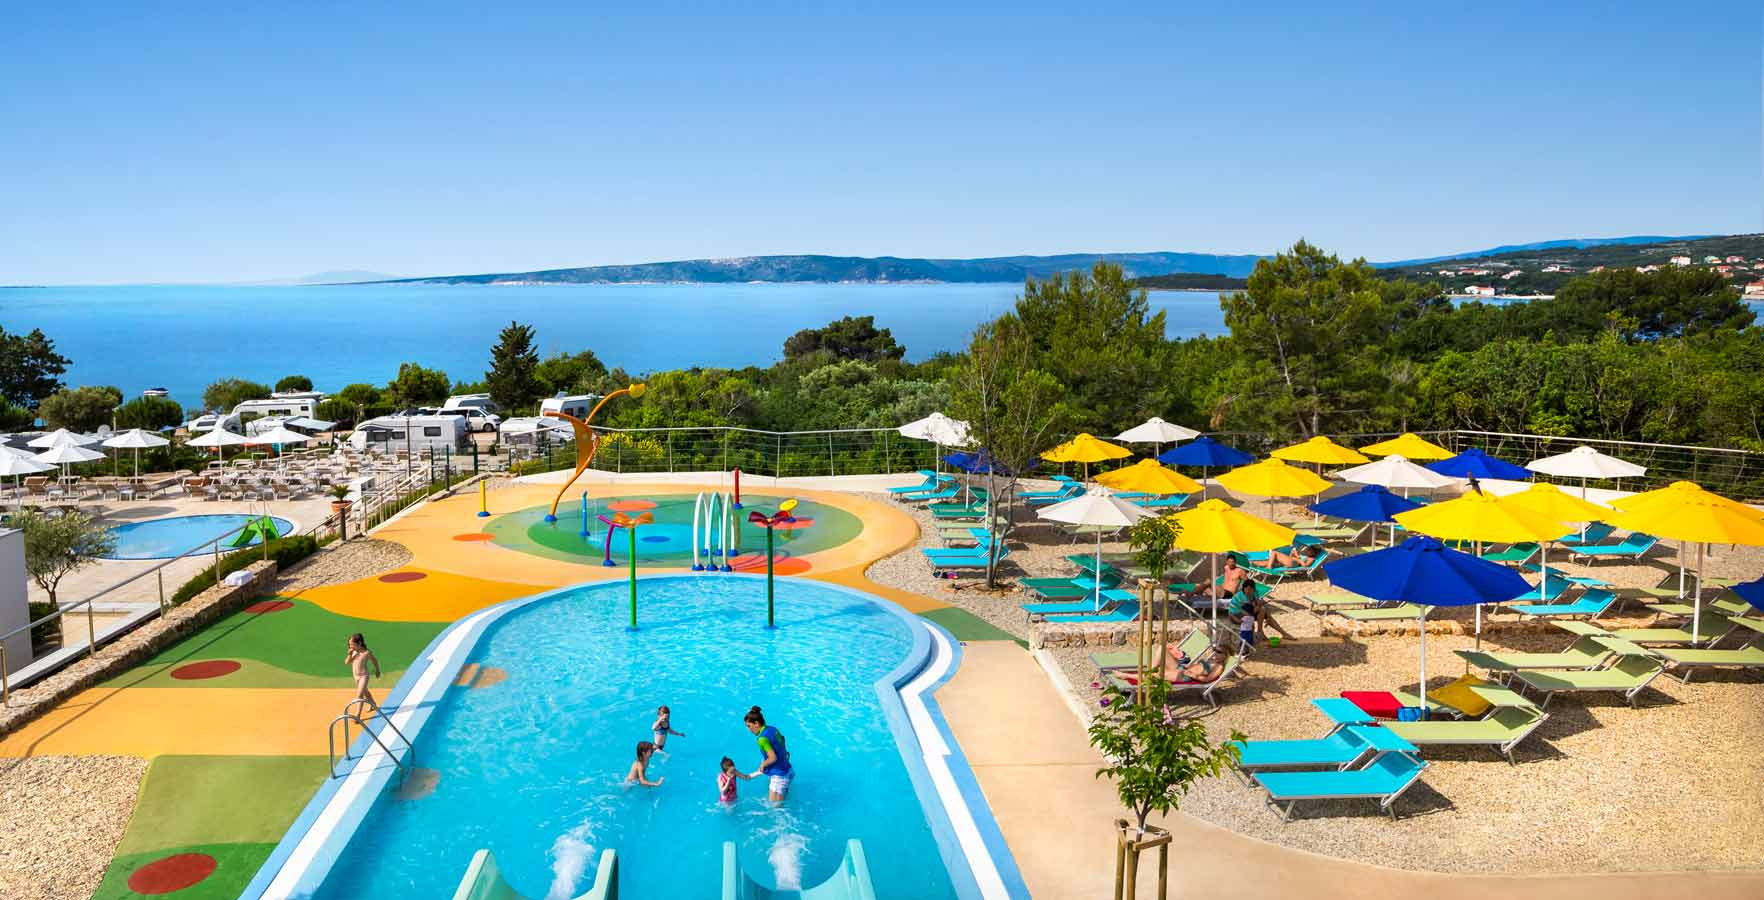 Campsite Krk - swimming pool